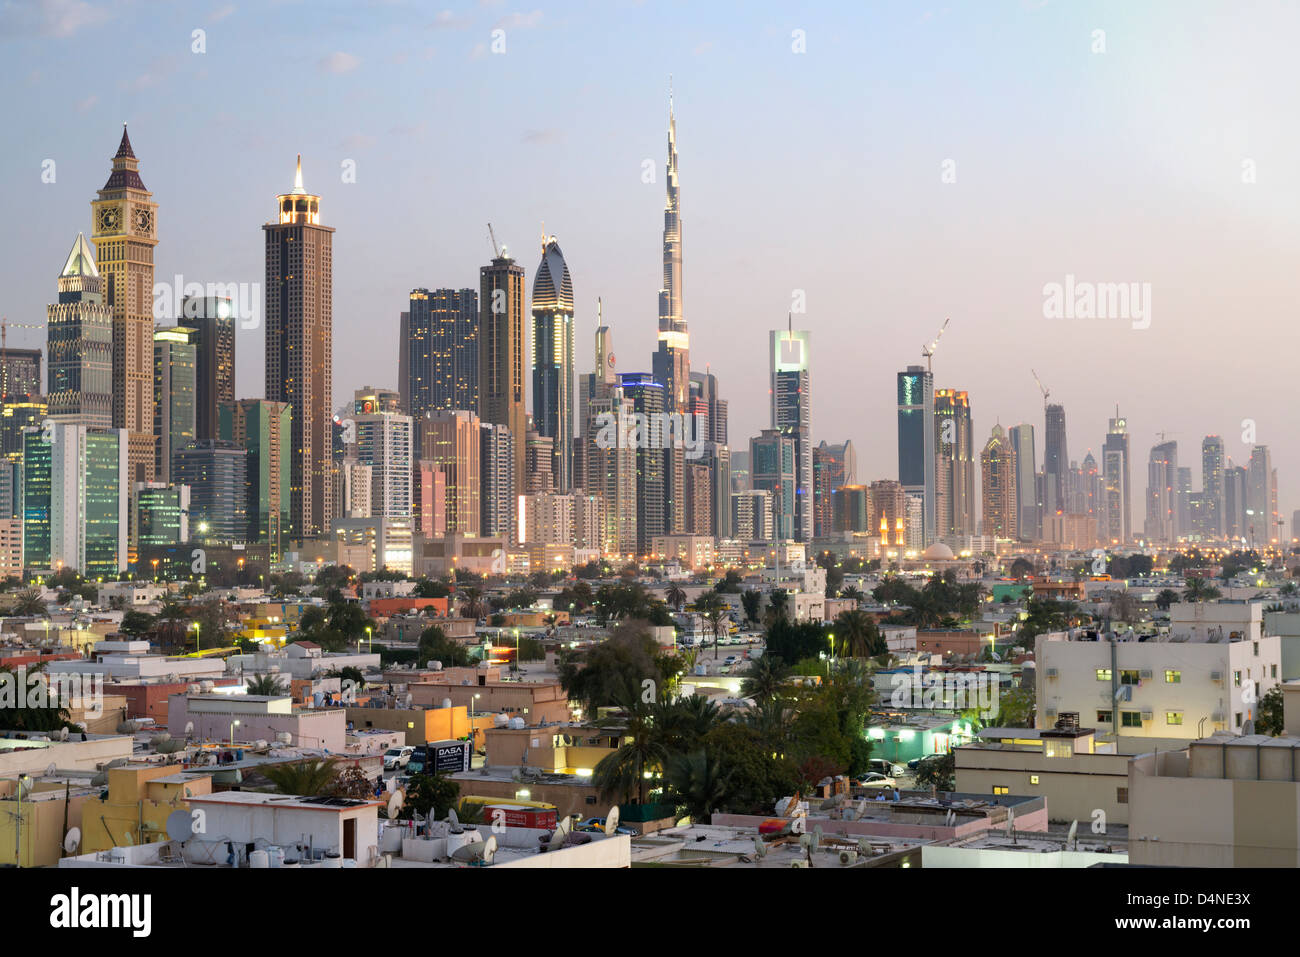 Evening view across old Al Satwa district towards modern skyline of Dubai with skyscrapers in United Arab Emirates - Stock Image